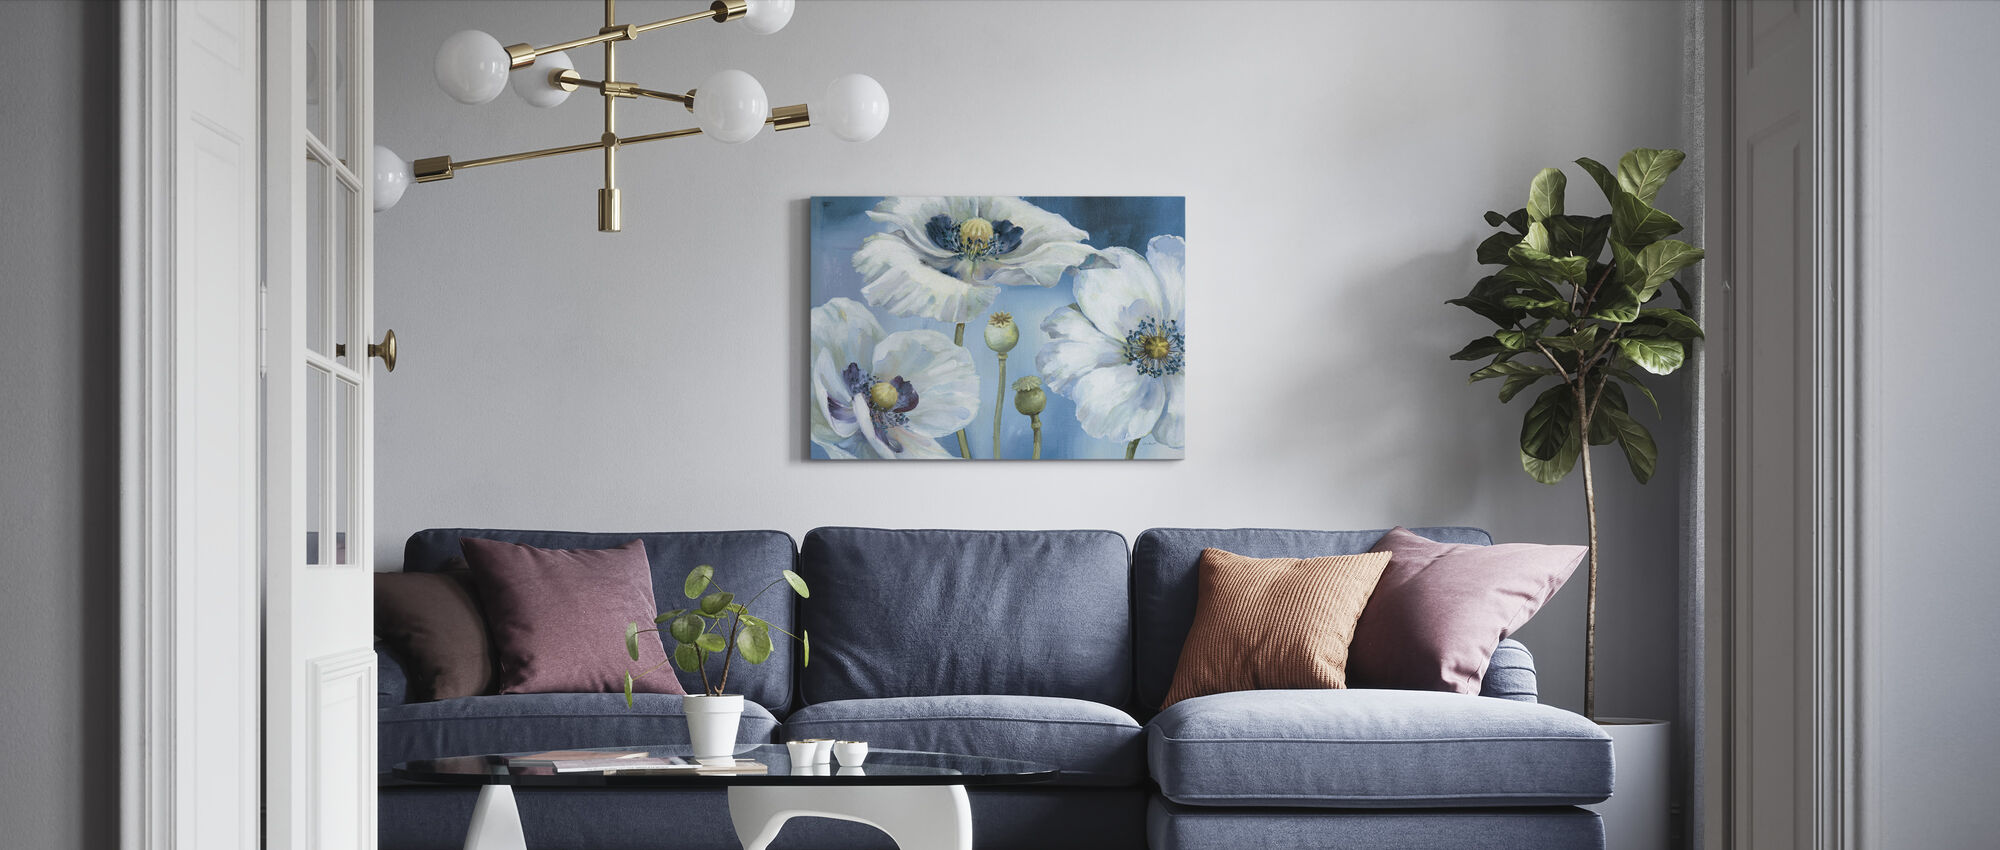 Blue Dance - Canvas print - Living Room